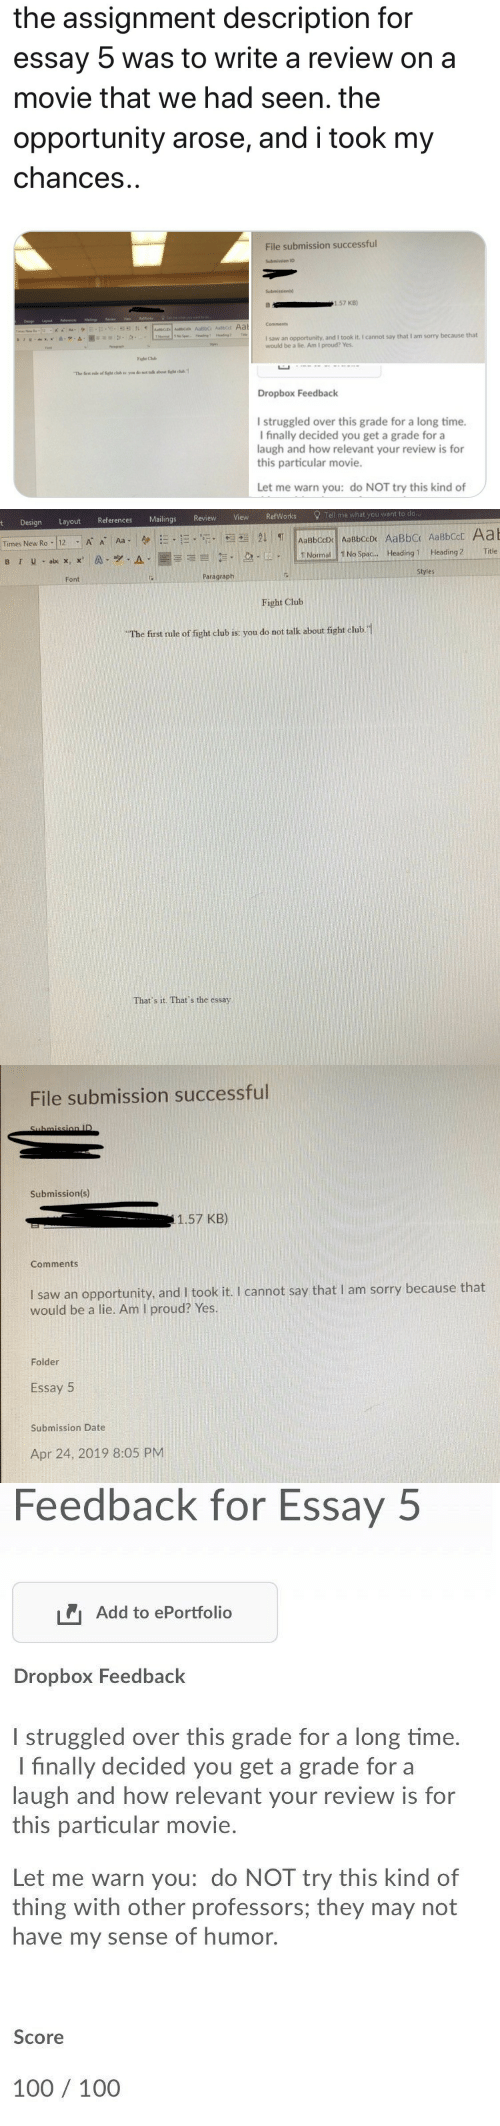 Submissions: the assignment description for  essay  was to write a review on a  movie that we had seen. the  opportunity arose, and i took my  chances  File submission successful  Submissions  1.57 KB)  Comments  I saw an opportunity, and I took it. I cannot say that I am sorry because that  would be a lie. Am I proud? Yes.  Fand  Faght Club  The fist rale of ight club in: you do not talk about figh chb 1  Dropbox Feedback  I struggled over this grade for a long time.  I finally decided you get a grade for a  laugh and how relevant your review is for  this particular movie.  Let me warn you: do NOT try this kind of   erences Mailings Review View RefWorks Tell me what you want to do  t Design Layout Refe  || TNormal!!NoSpac  A-1圜喜毛引 .le! . el-  Headingl. Heading2  Title  Styles  Paragraph  Font  Fight Club  The first rule of fight club is: you do not talk about fight chub.1  That's it. That's the essay   File submission successful  Submission(s)  1.57 KB)  Comments  I saw an opportunity, and I took it. I cannot say that I am sorry because that  would be a lie. Am I proud? Yes.  Folder  Essay 5  Submission Date  Apr 24, 2019 8:05 PM   Feedback for Essay  5  Add to ePortfolio  Dropbox Feedback  l struggled over this grade for a long time.  I finally decided you get a grade for a  laugh and how relevant your review is for  this particular movie.  Let me warn you: do NOT try this kind of  thing with other professors; they may not  have my sense of humor.  Score  100 100